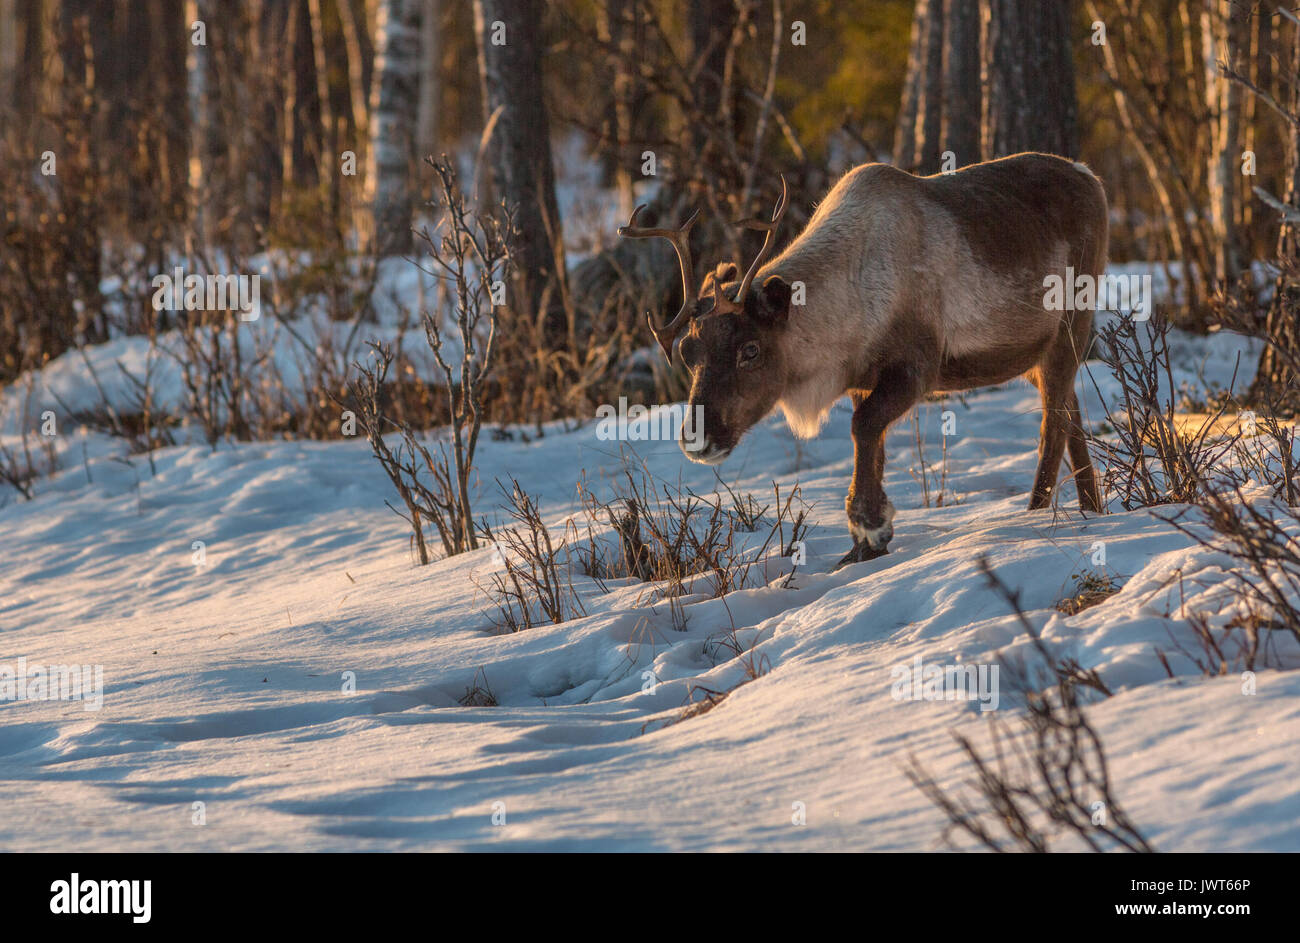 Reindeer, Rangifer tarandus walking in forest at sunset in warm nice colors, big antlers and a lot of snow on the ground, Norrbotten, Sweden - Stock Image